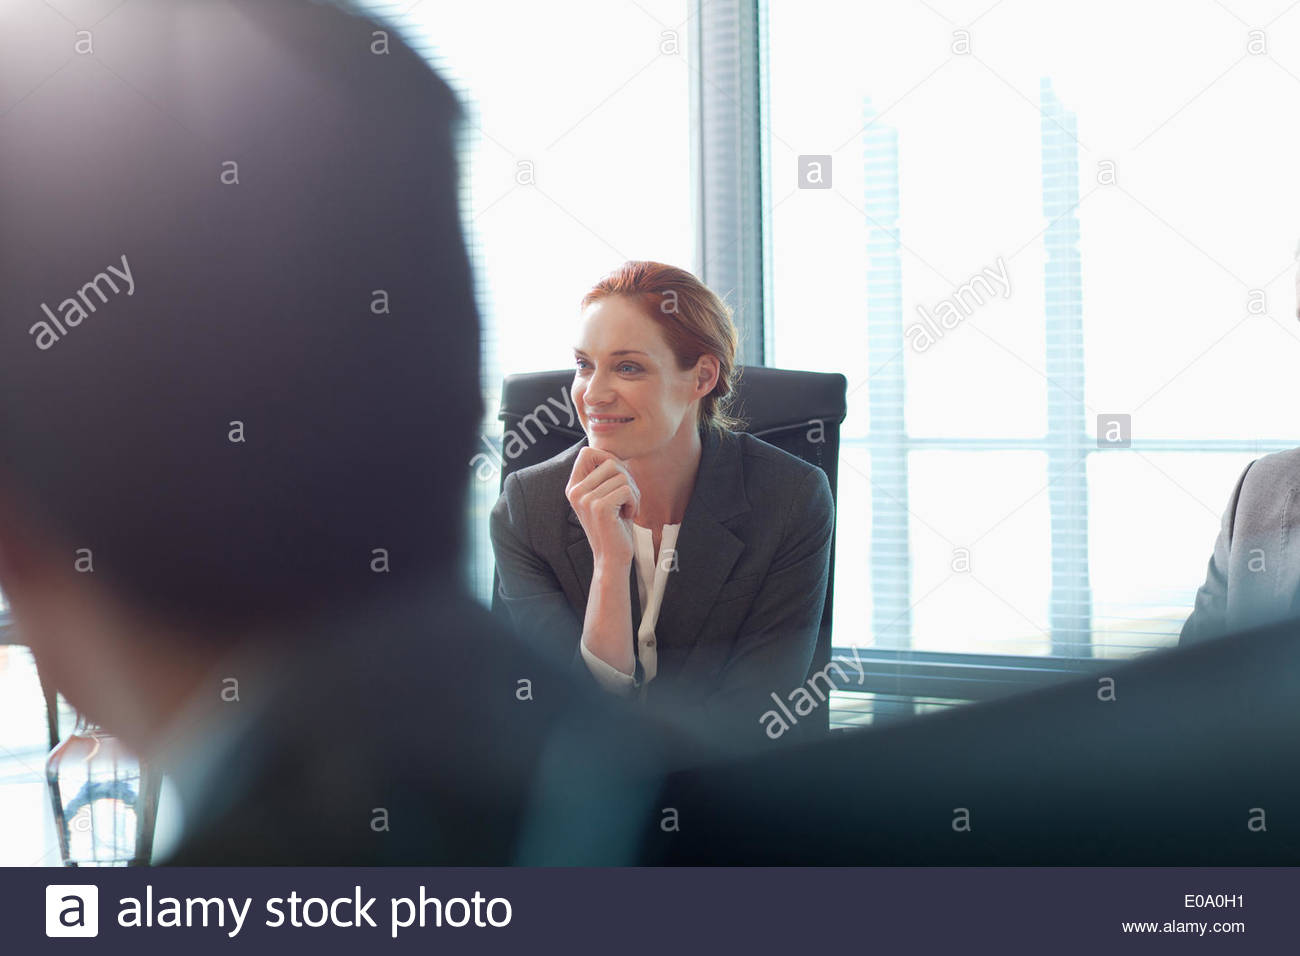 Portrait of smiling businesswoman in meeting - Stock Image